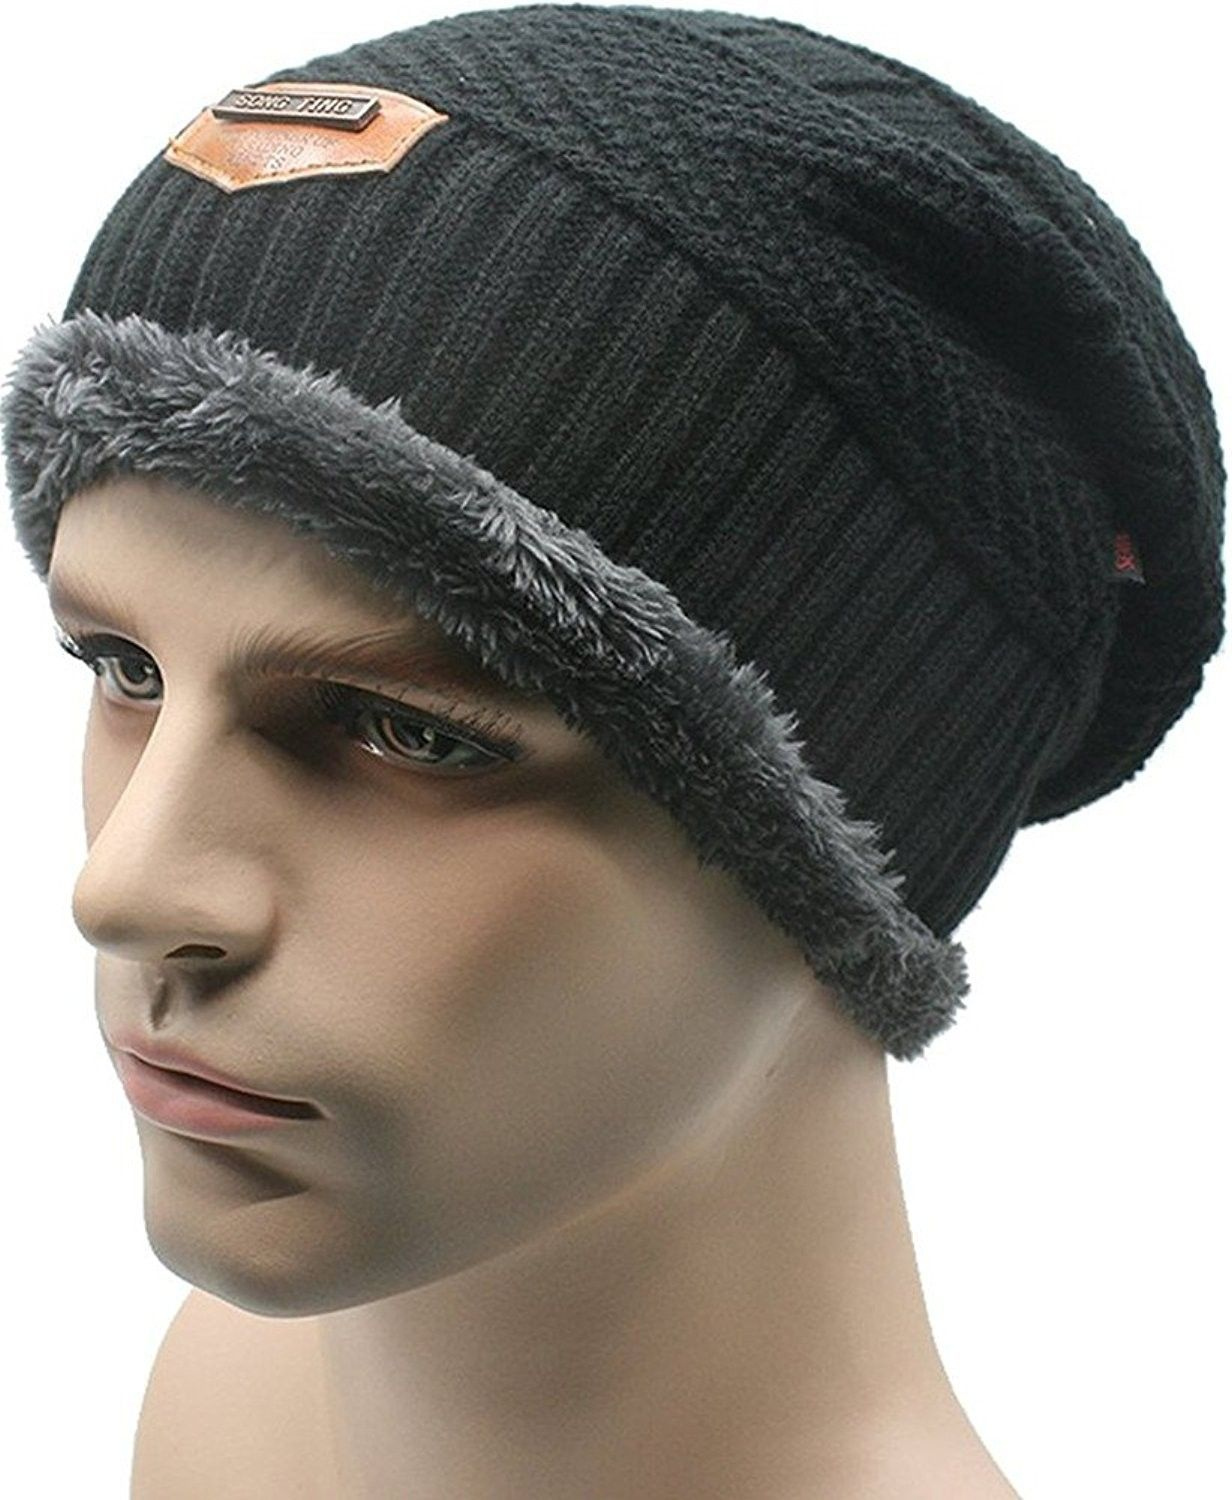 00a693f9e2e Mens Soft Lined Thick Skull Cap Unisex Warm Winter Beanies Hat ...